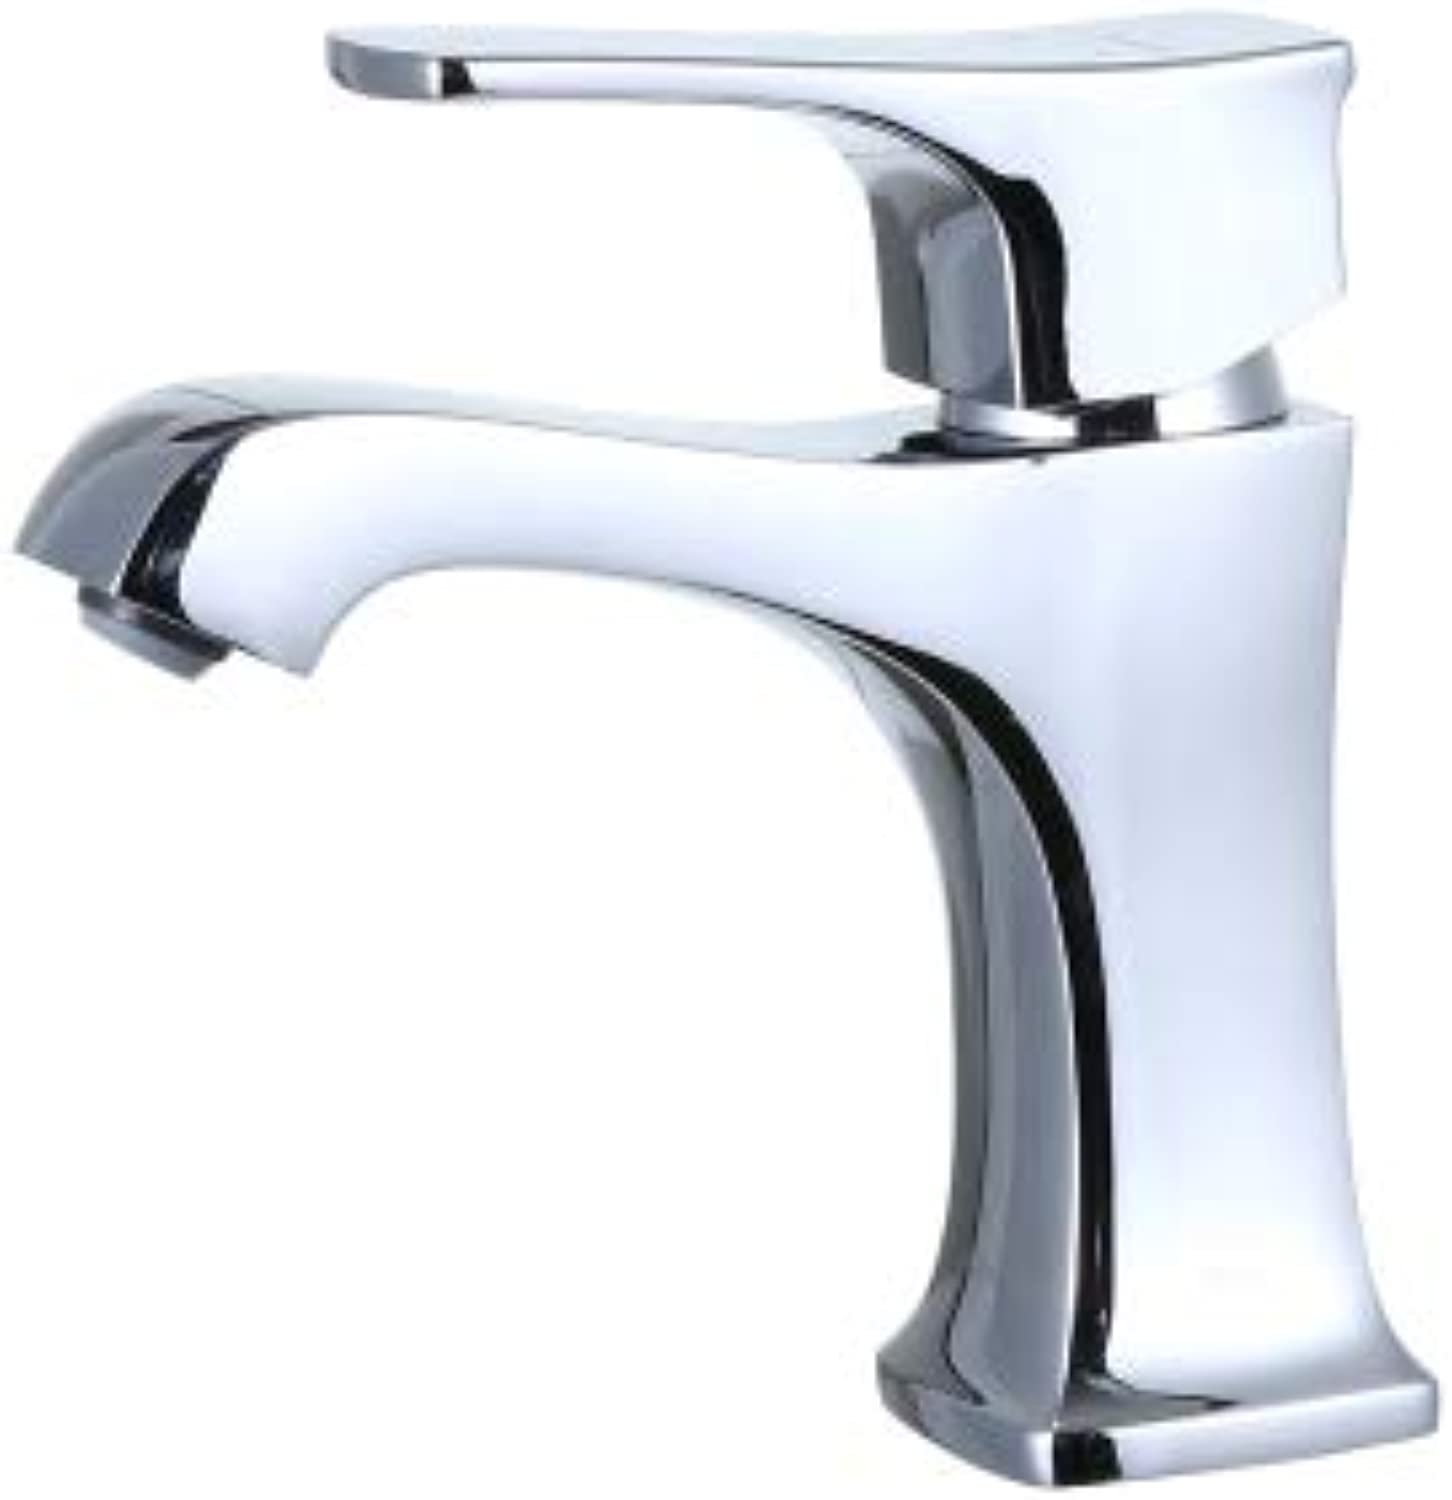 Faucet Copper Square Washbasin Basin Hot and Cold Water Faucet Sink Bathroom Cabinet Faucet